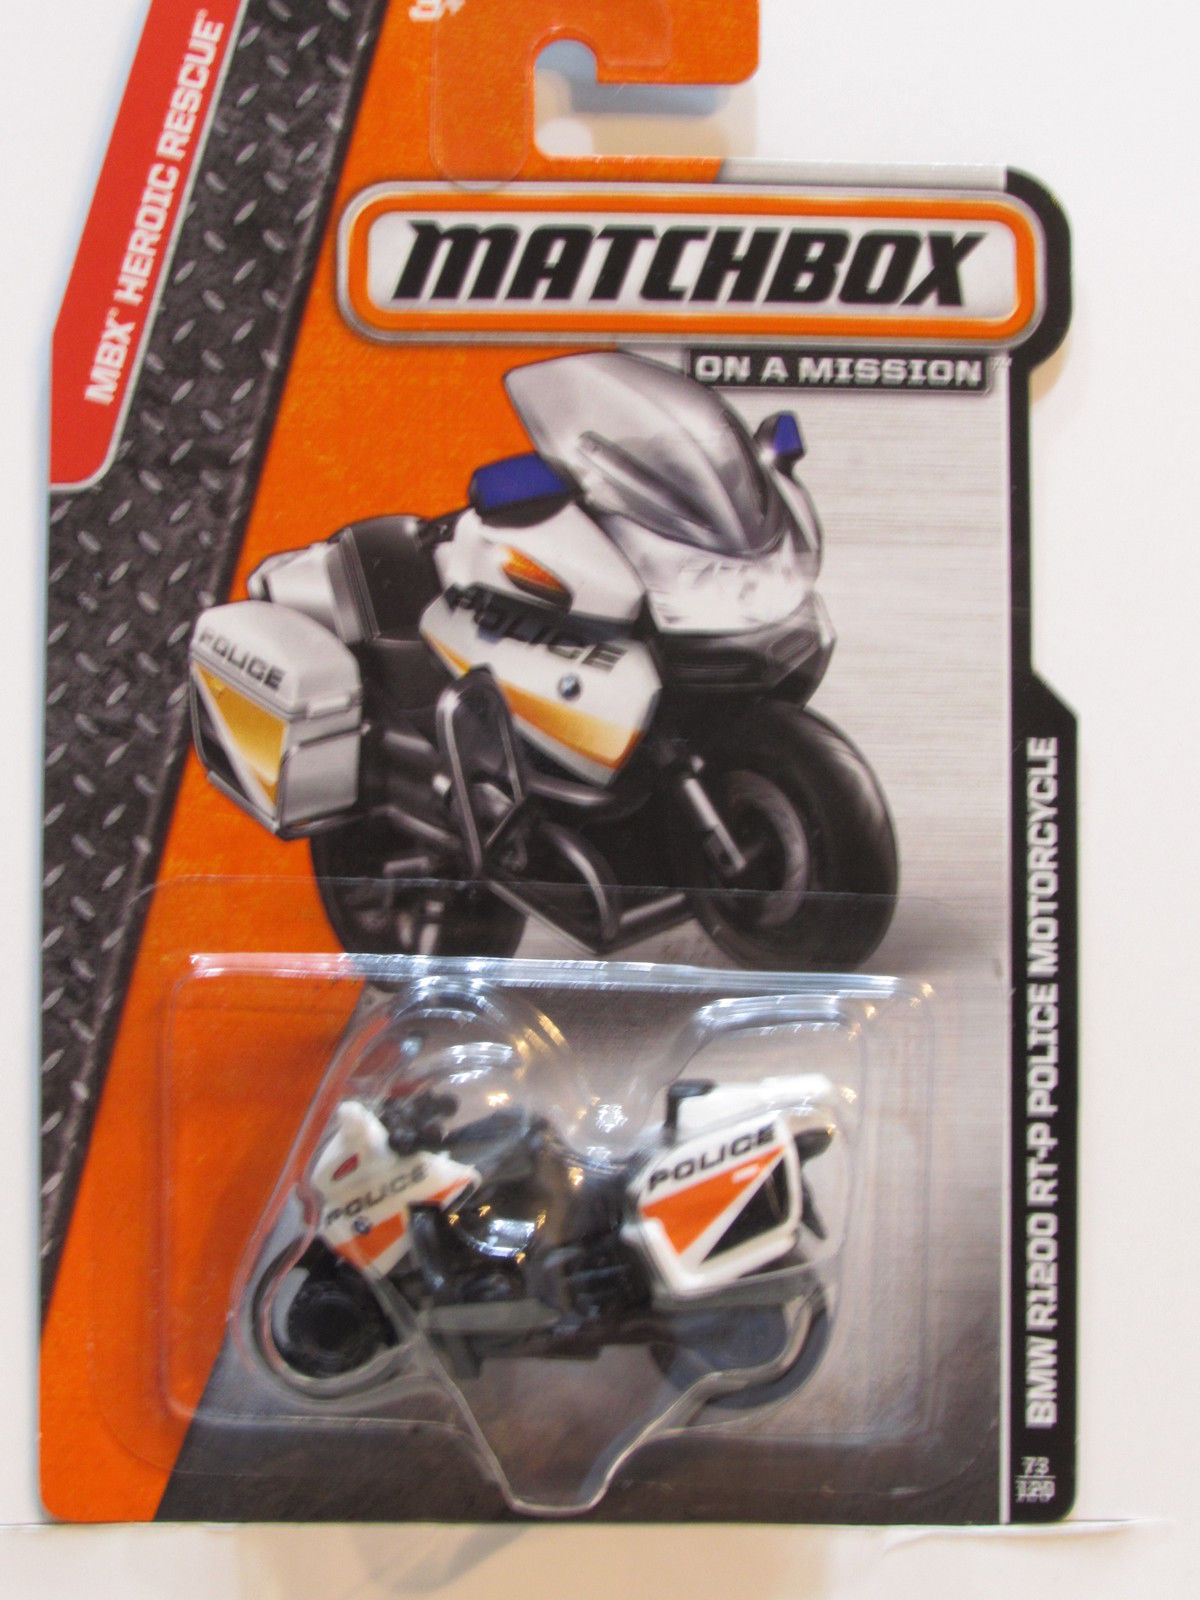 MATCHBOX 2014 ON A MISSION BMW R1200 RT-P POLICE MOTORCYCLE